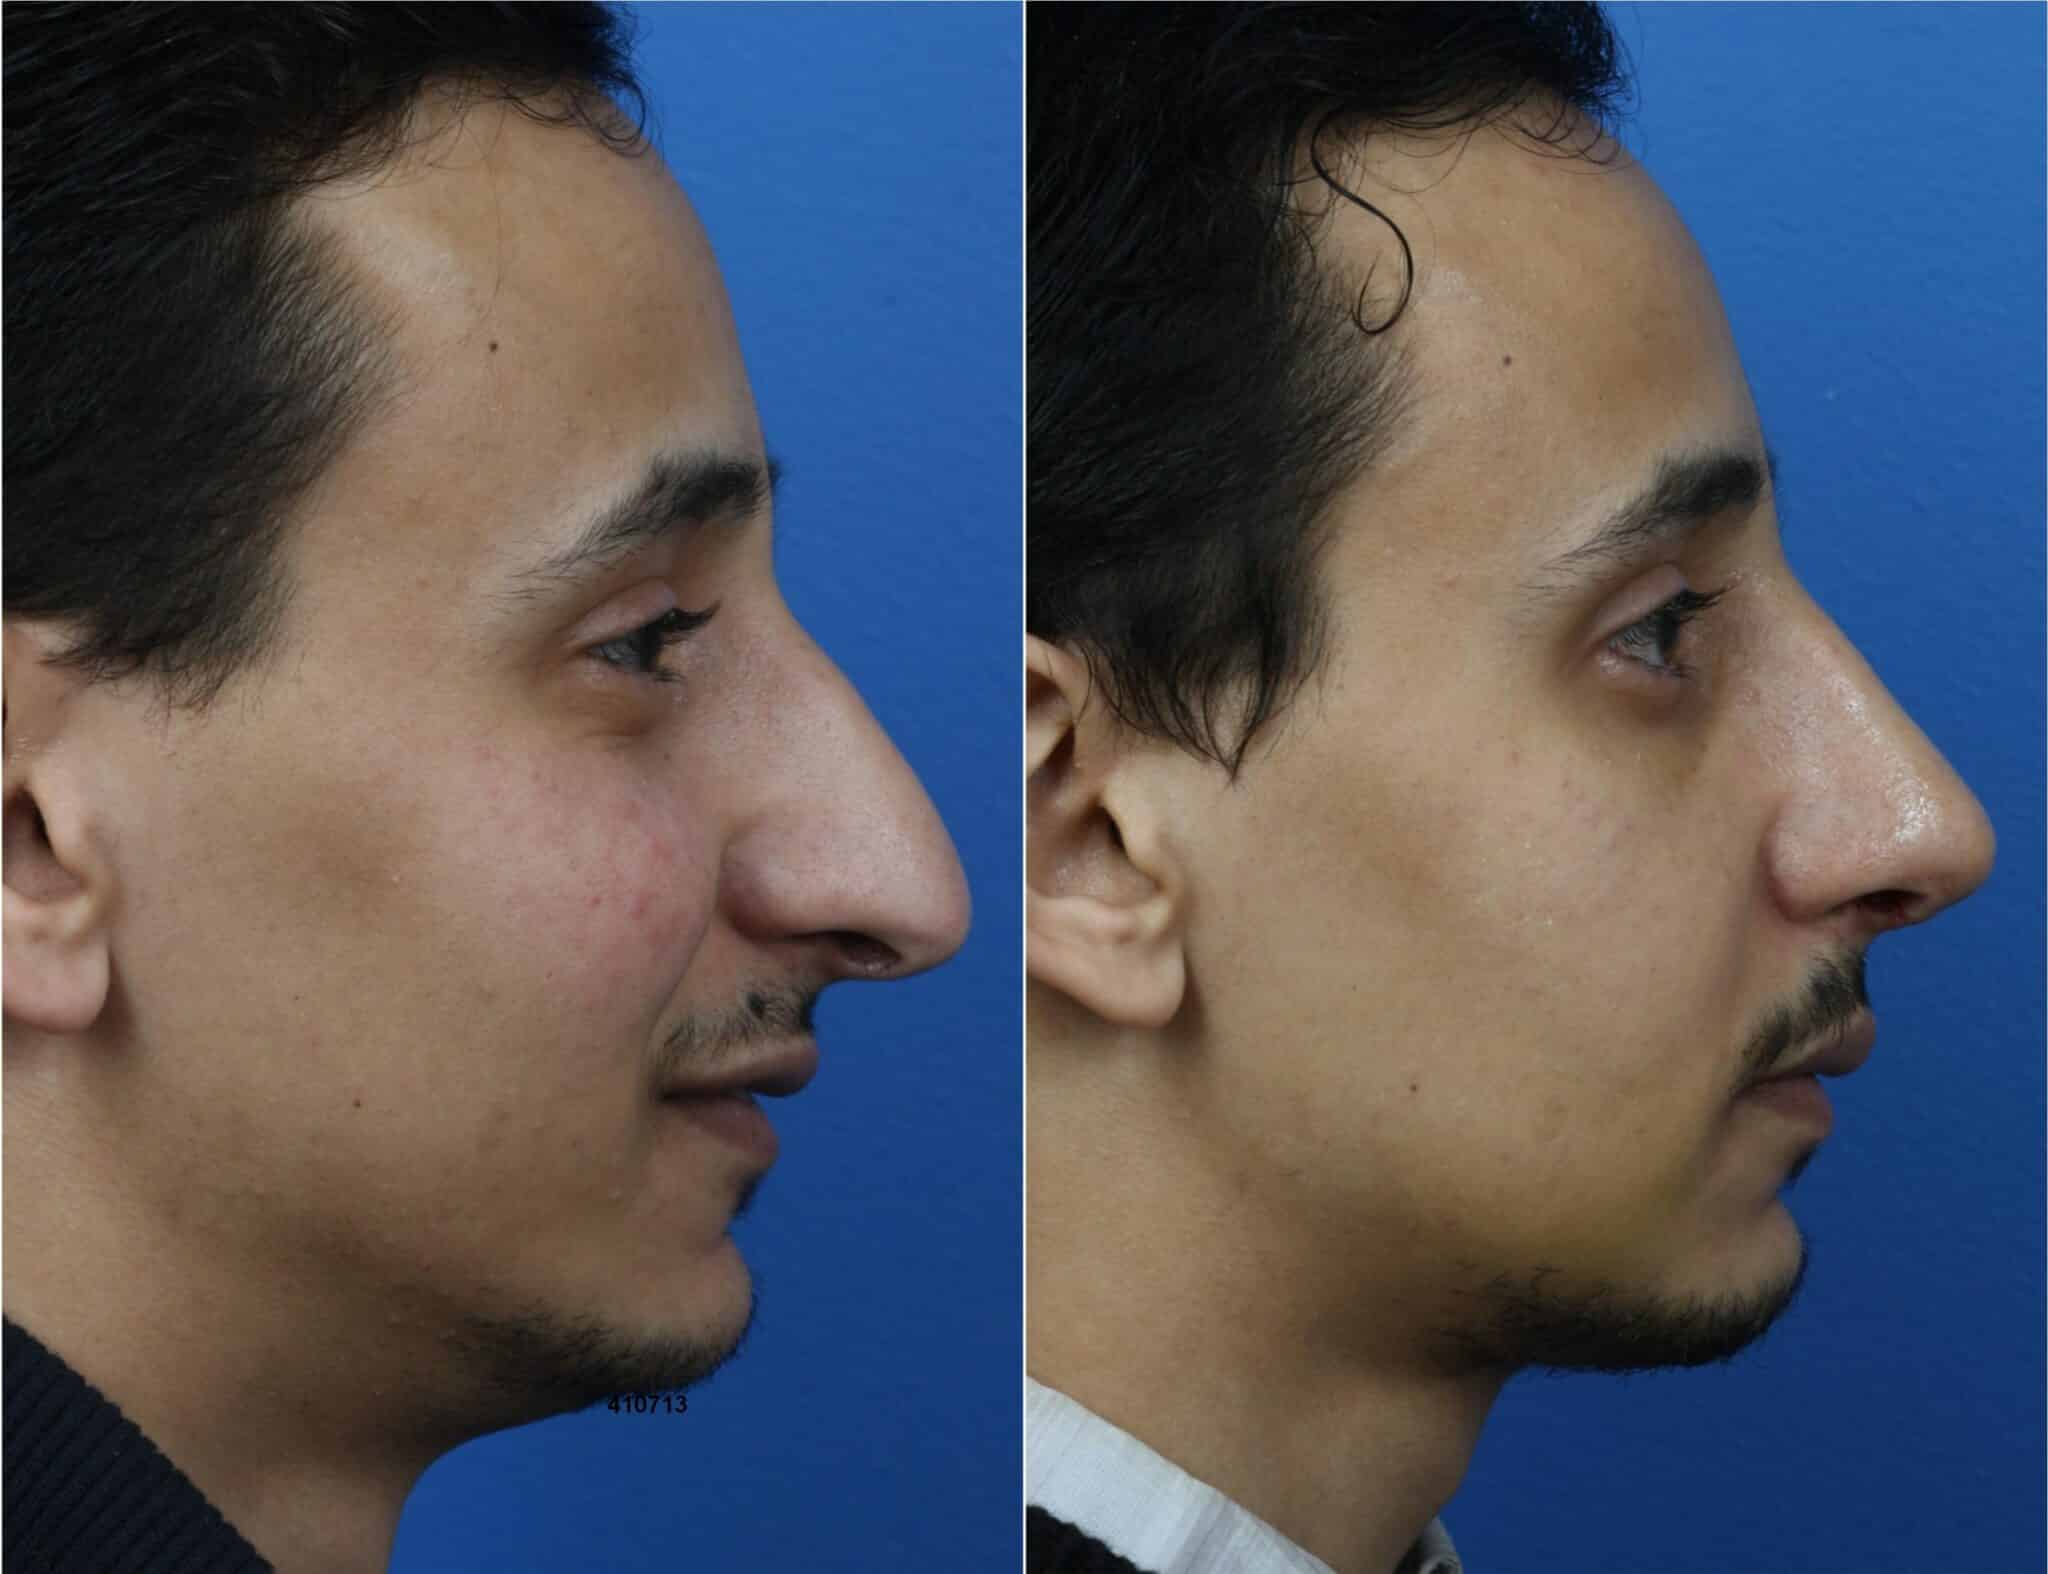 Rhinoplasty to Correct Nasal Bridge and Refine Profile by Dr. Miller